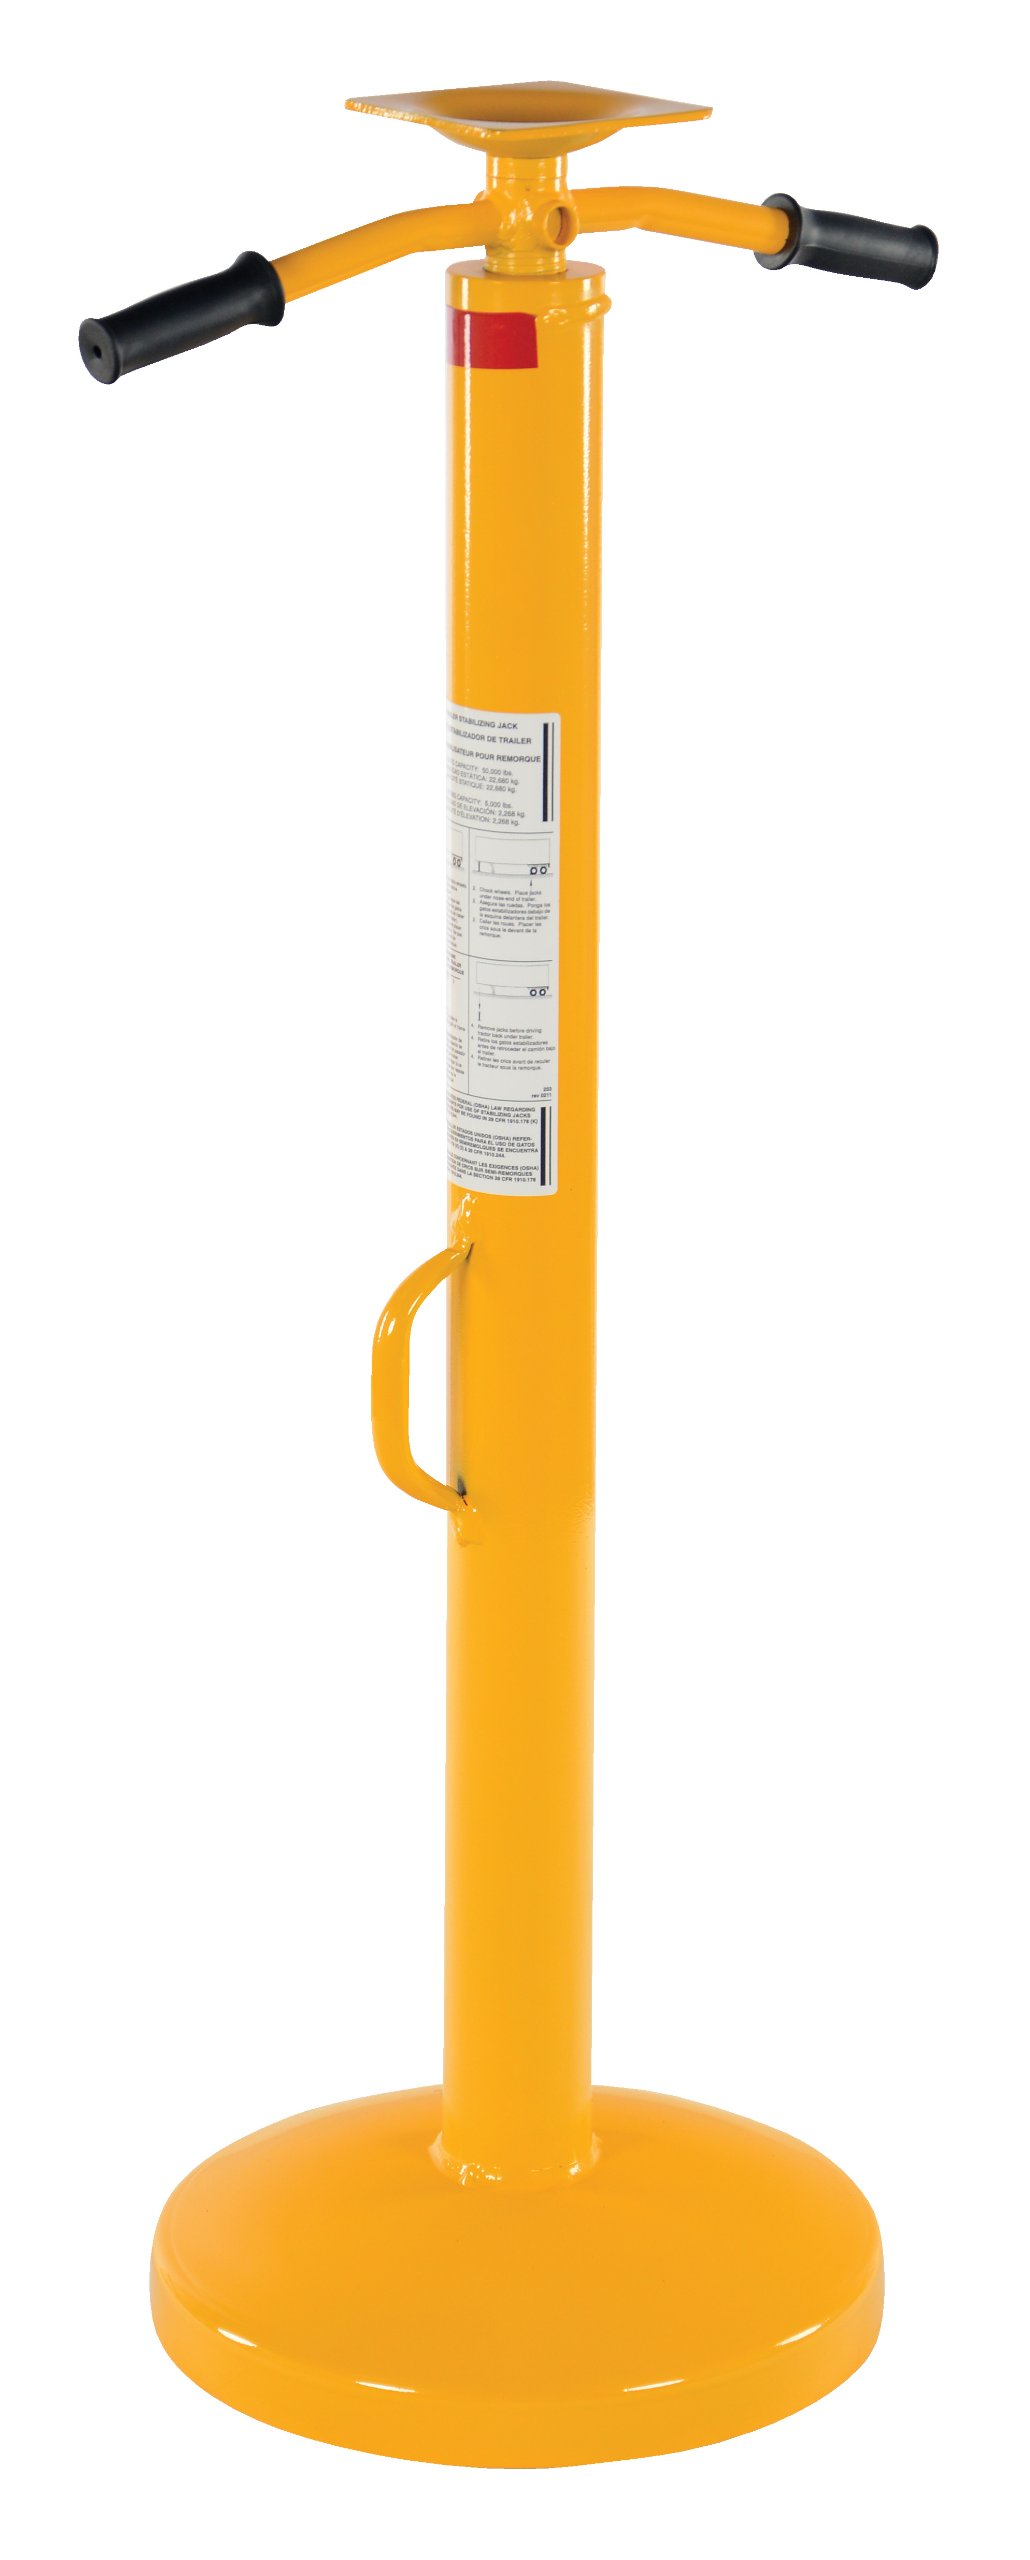 Vestil SJ-35-2H Steel Economy Trailer Stabilizing Jack with Powder Coat Safety Yellow Finish, 50000 lbs Capacity